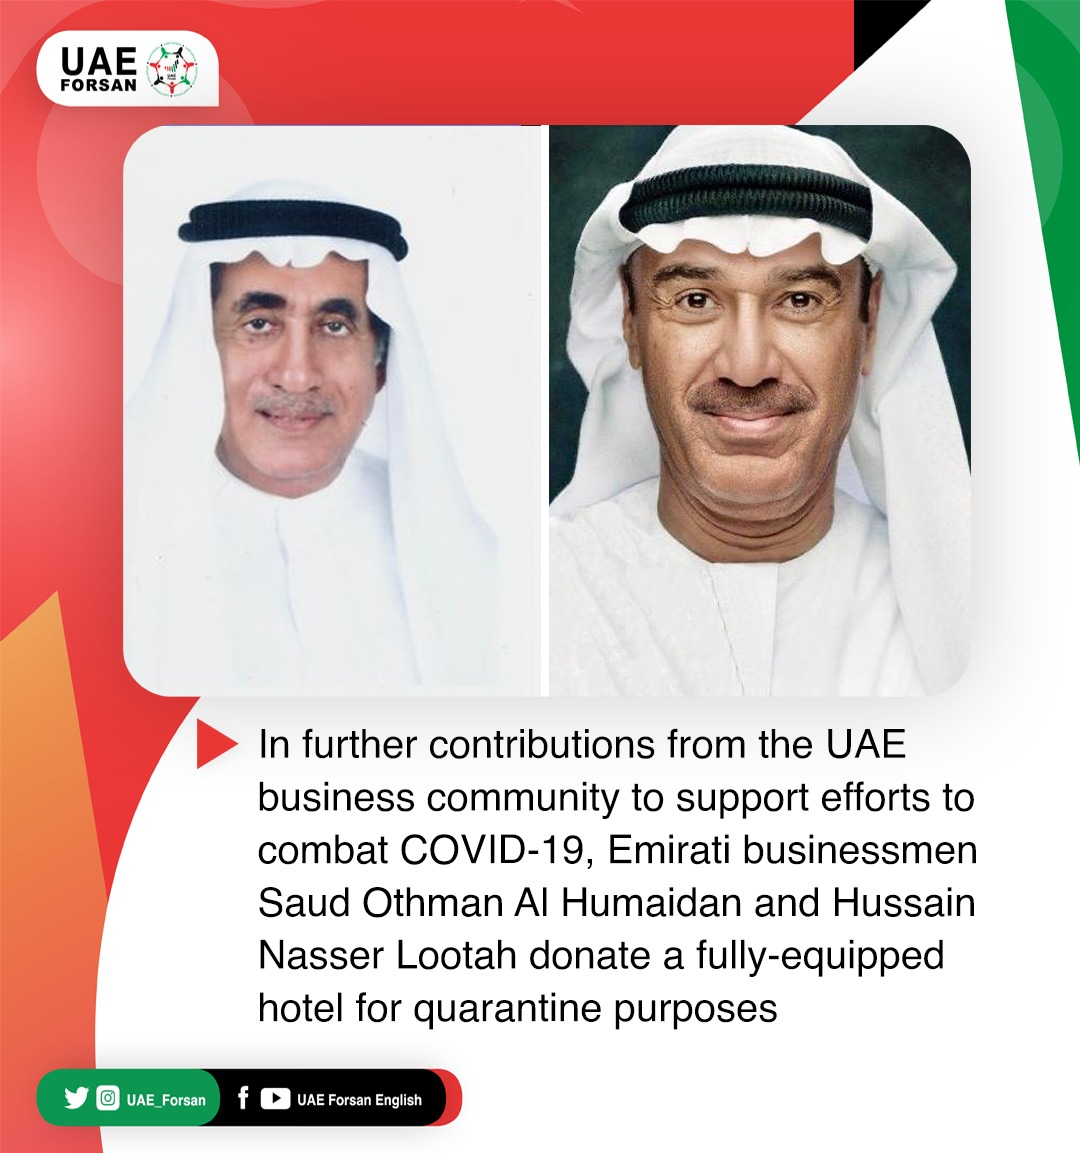 In further contributions from the UAE business community to support efforts to combat COVID-19, Emirati businessmen Saud Othman Al Humaidan and Hussain Nasser Lootah donate a fully-equipped hotel for quarantine purposes  #انت_مسؤول #YouAreResponsiblepic.twitter.com/gn7PdXPMUf